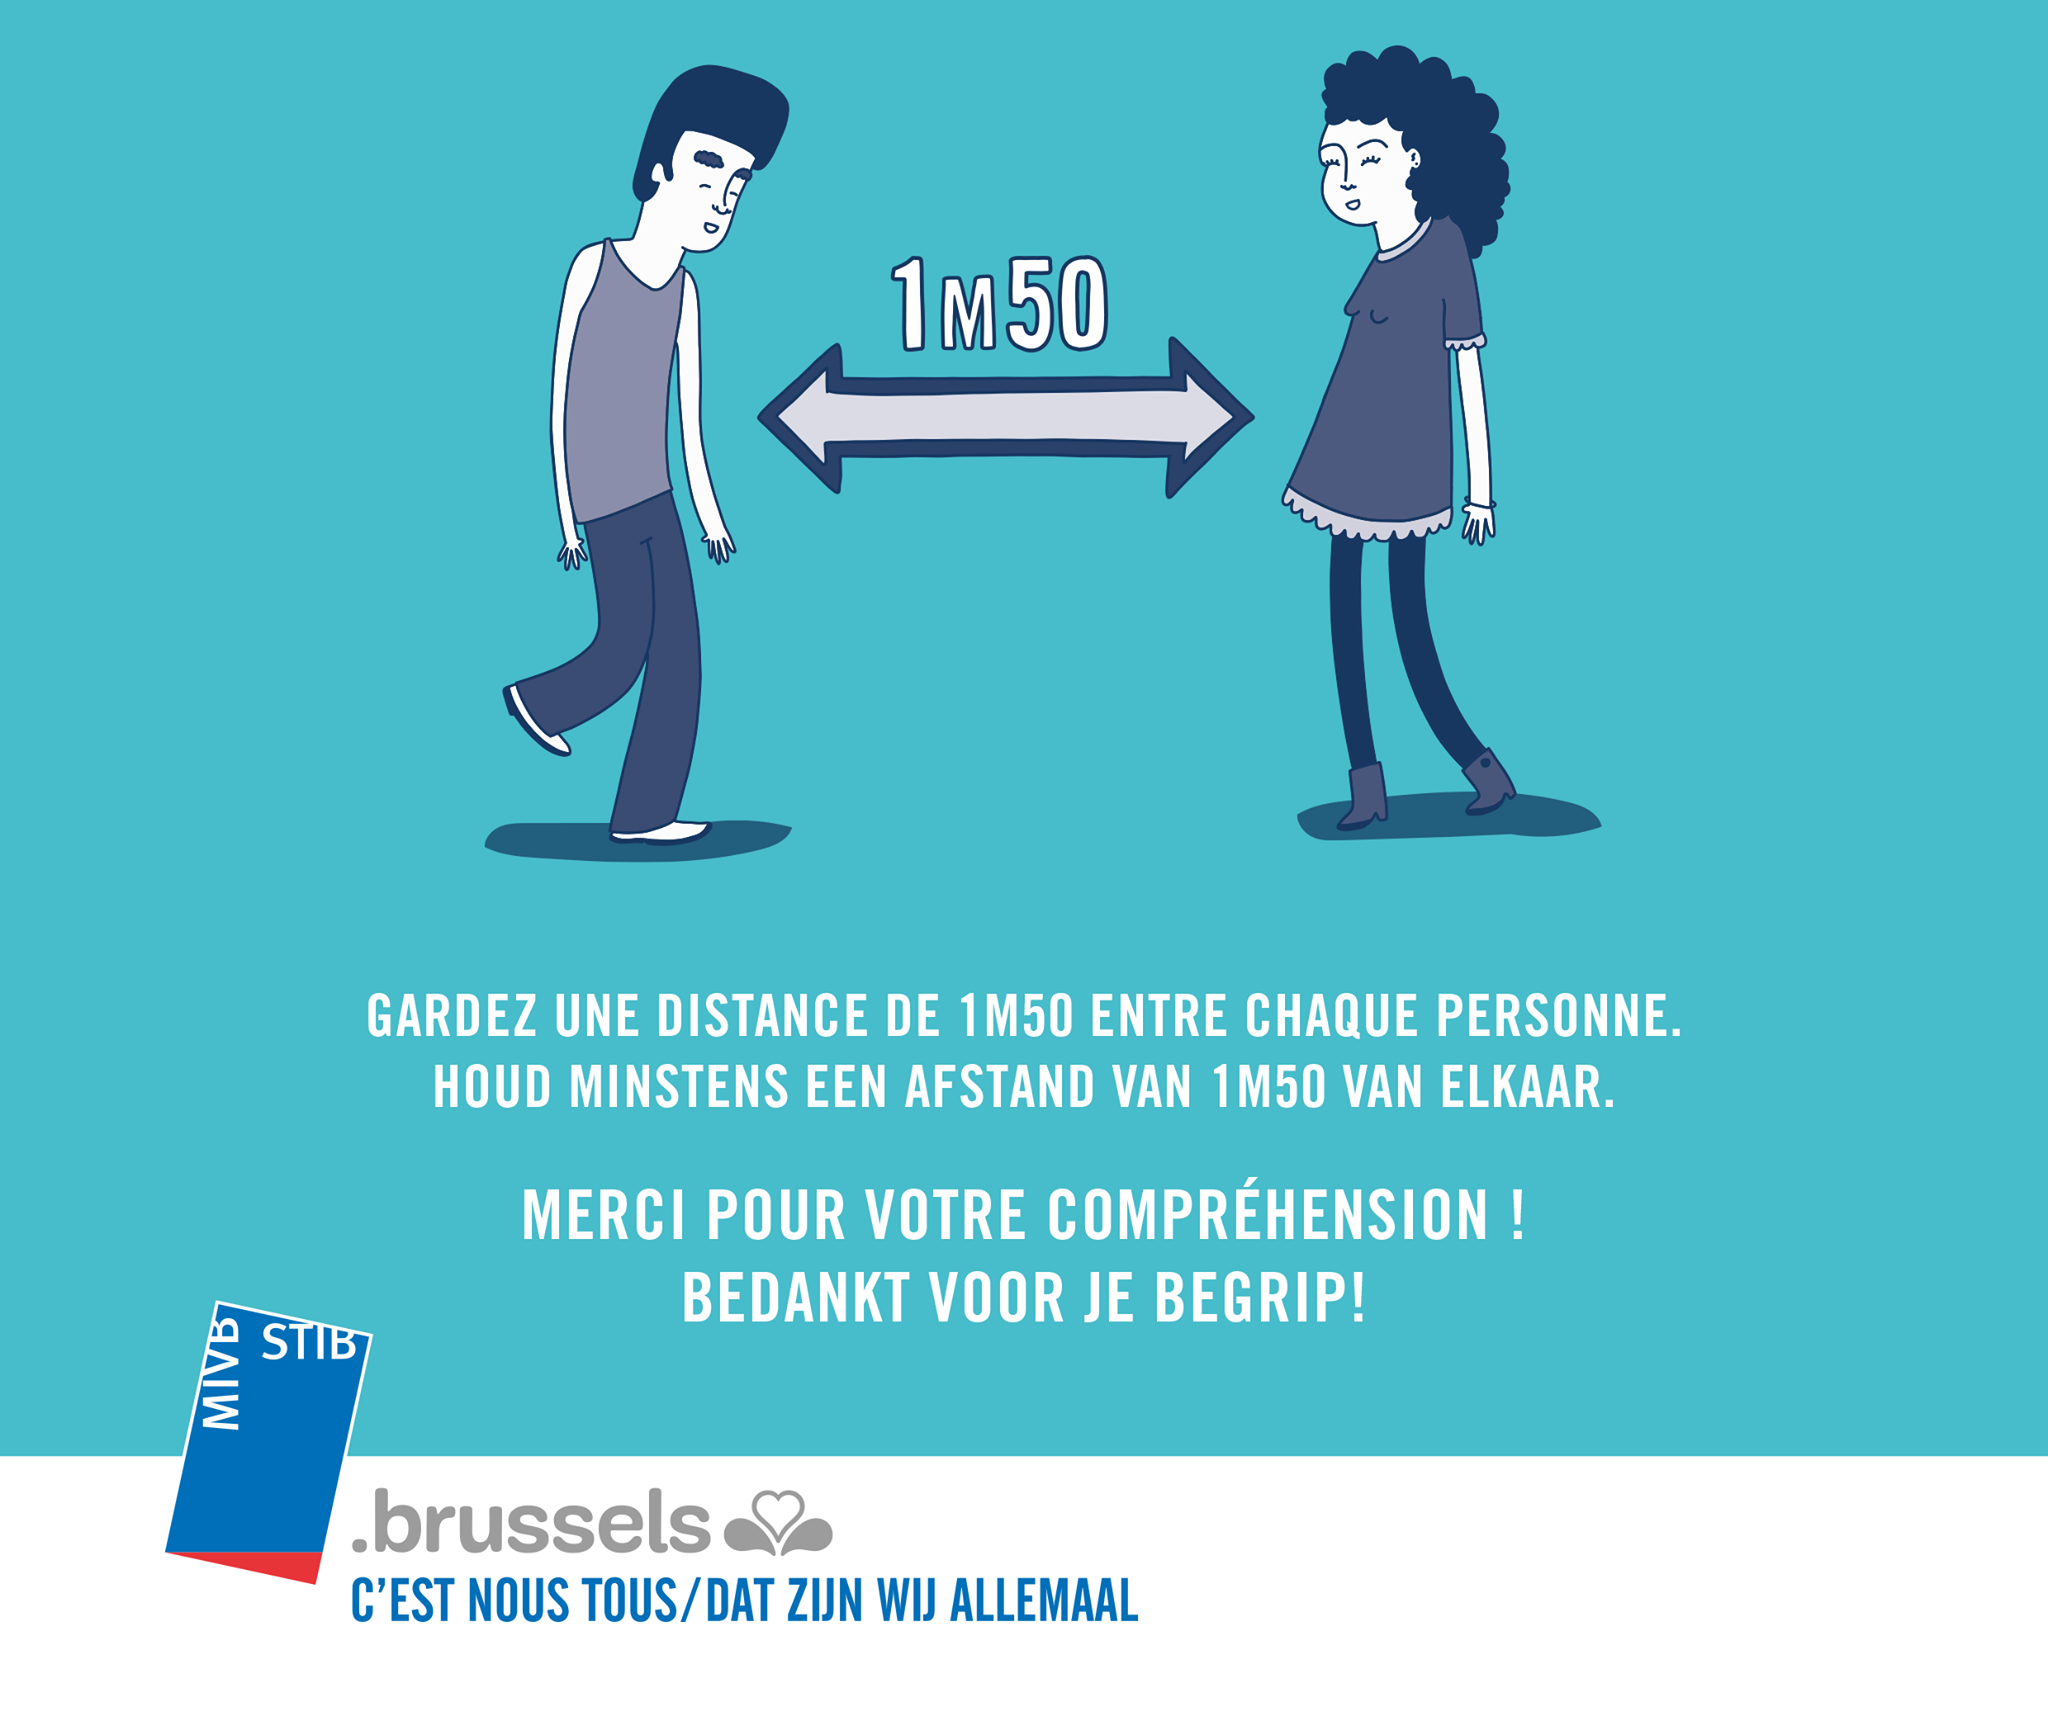 covid-19 stib distanciation sociale recommandations officielles